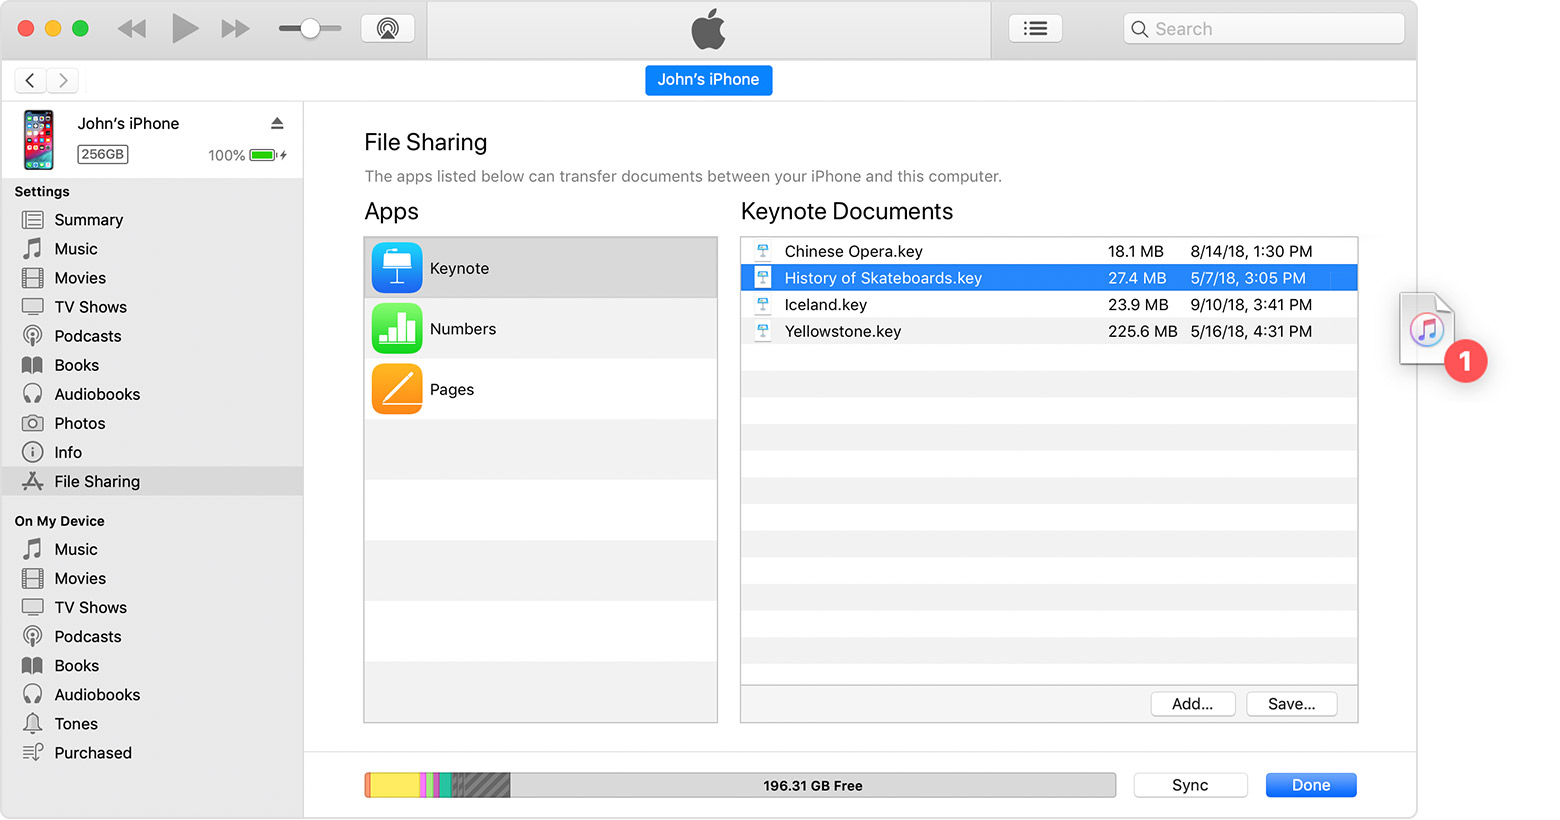 How to import photos from iphone 6 to macbook air